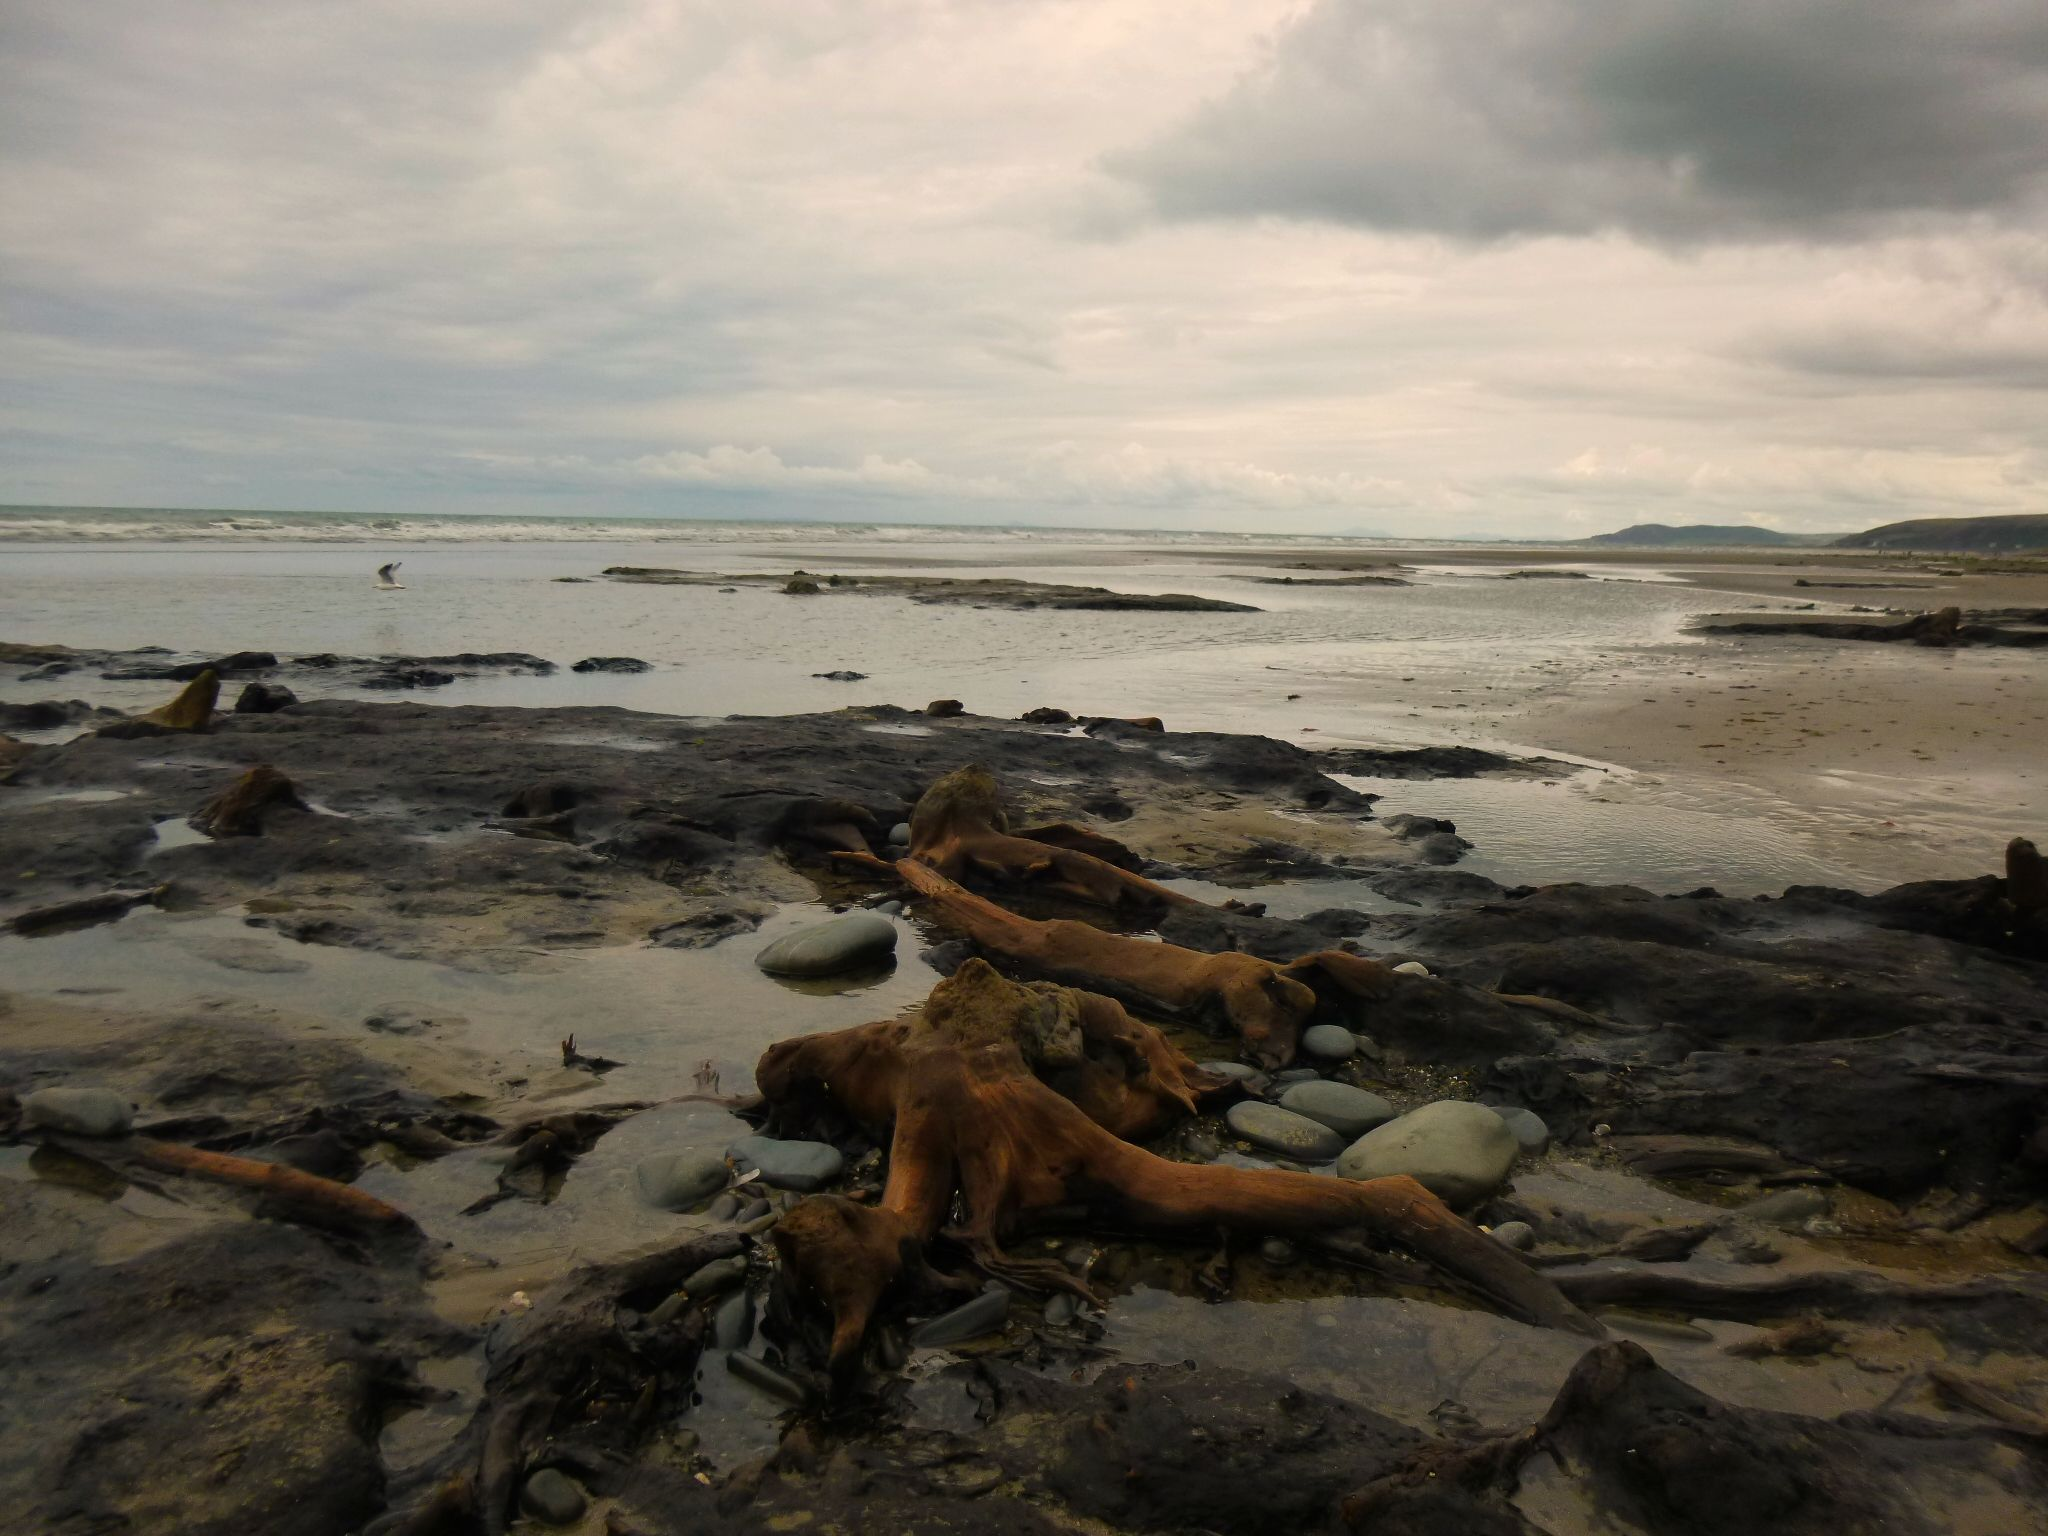 petrified forest borth wales by chris.adams.3557